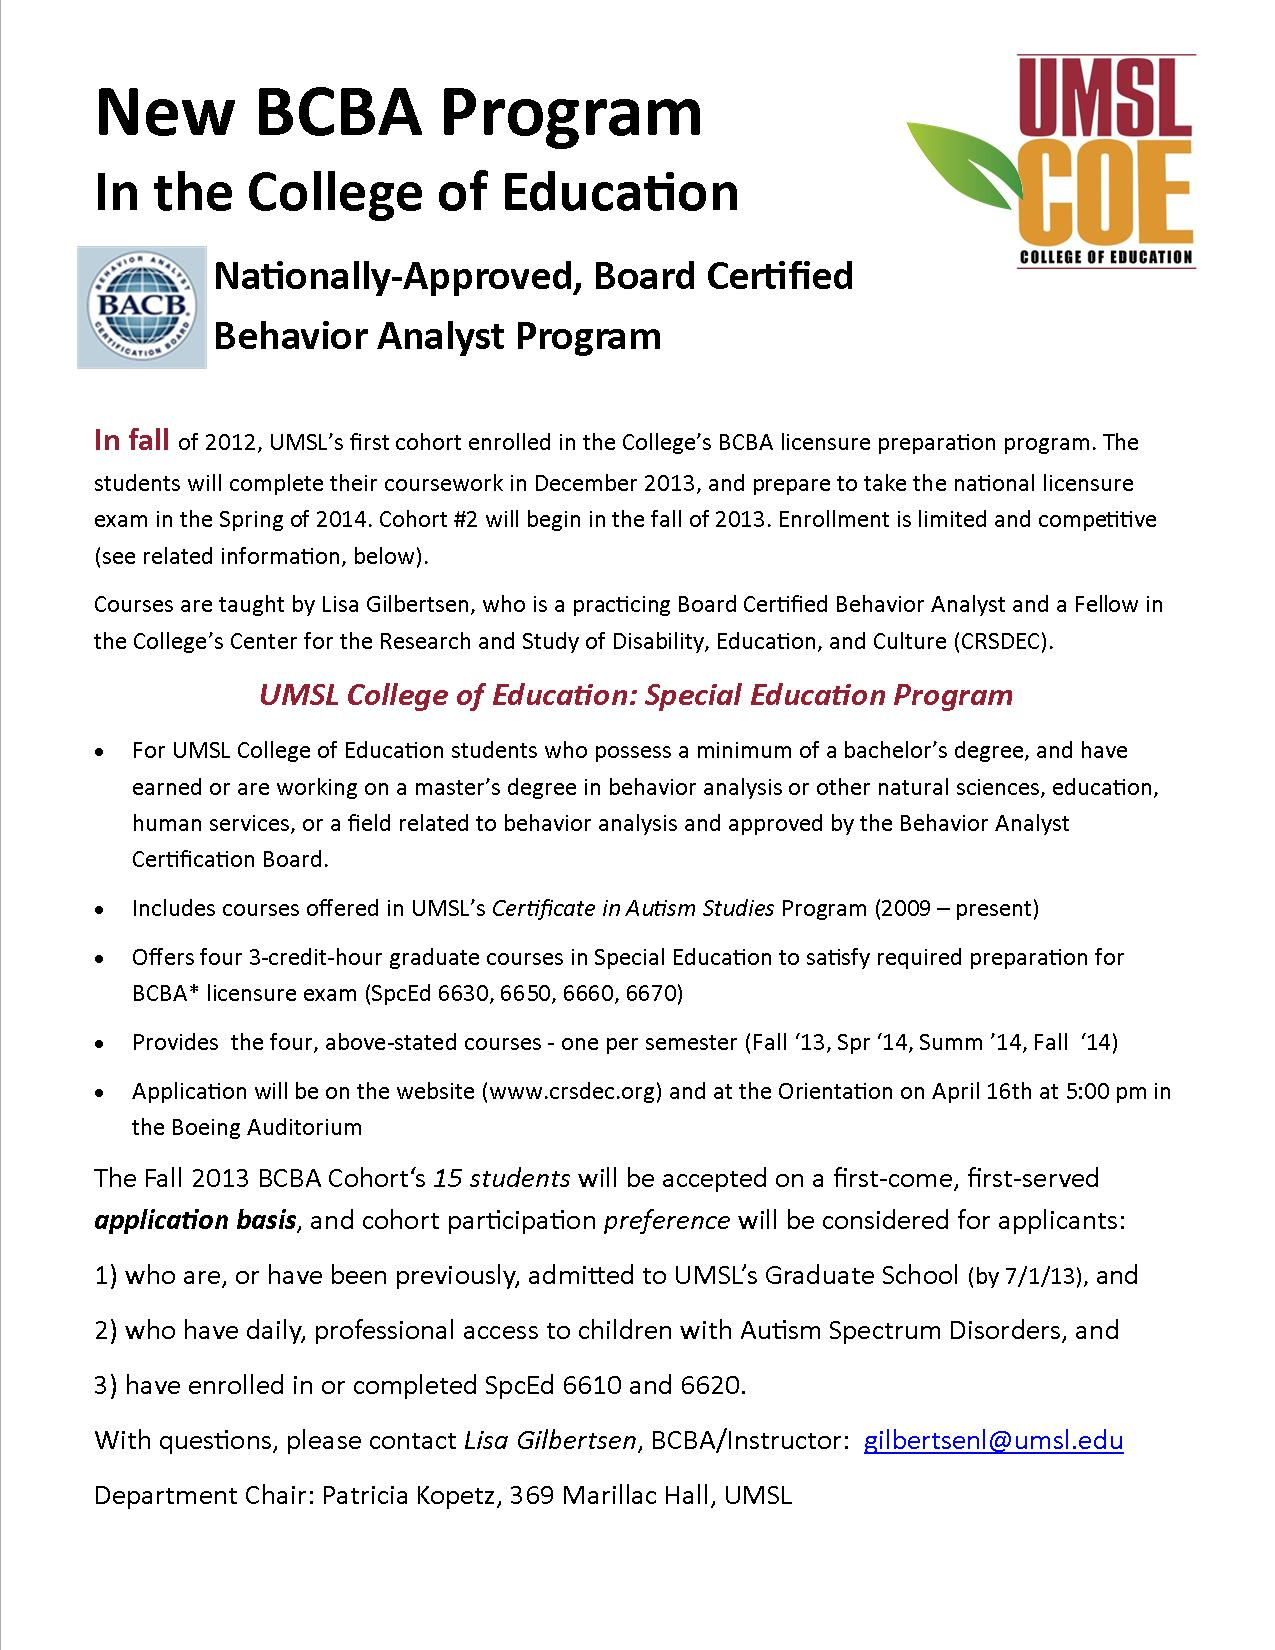 bcba coursework Aba's suite of self-paced and facilitated online training courses, offered through the aba lms.